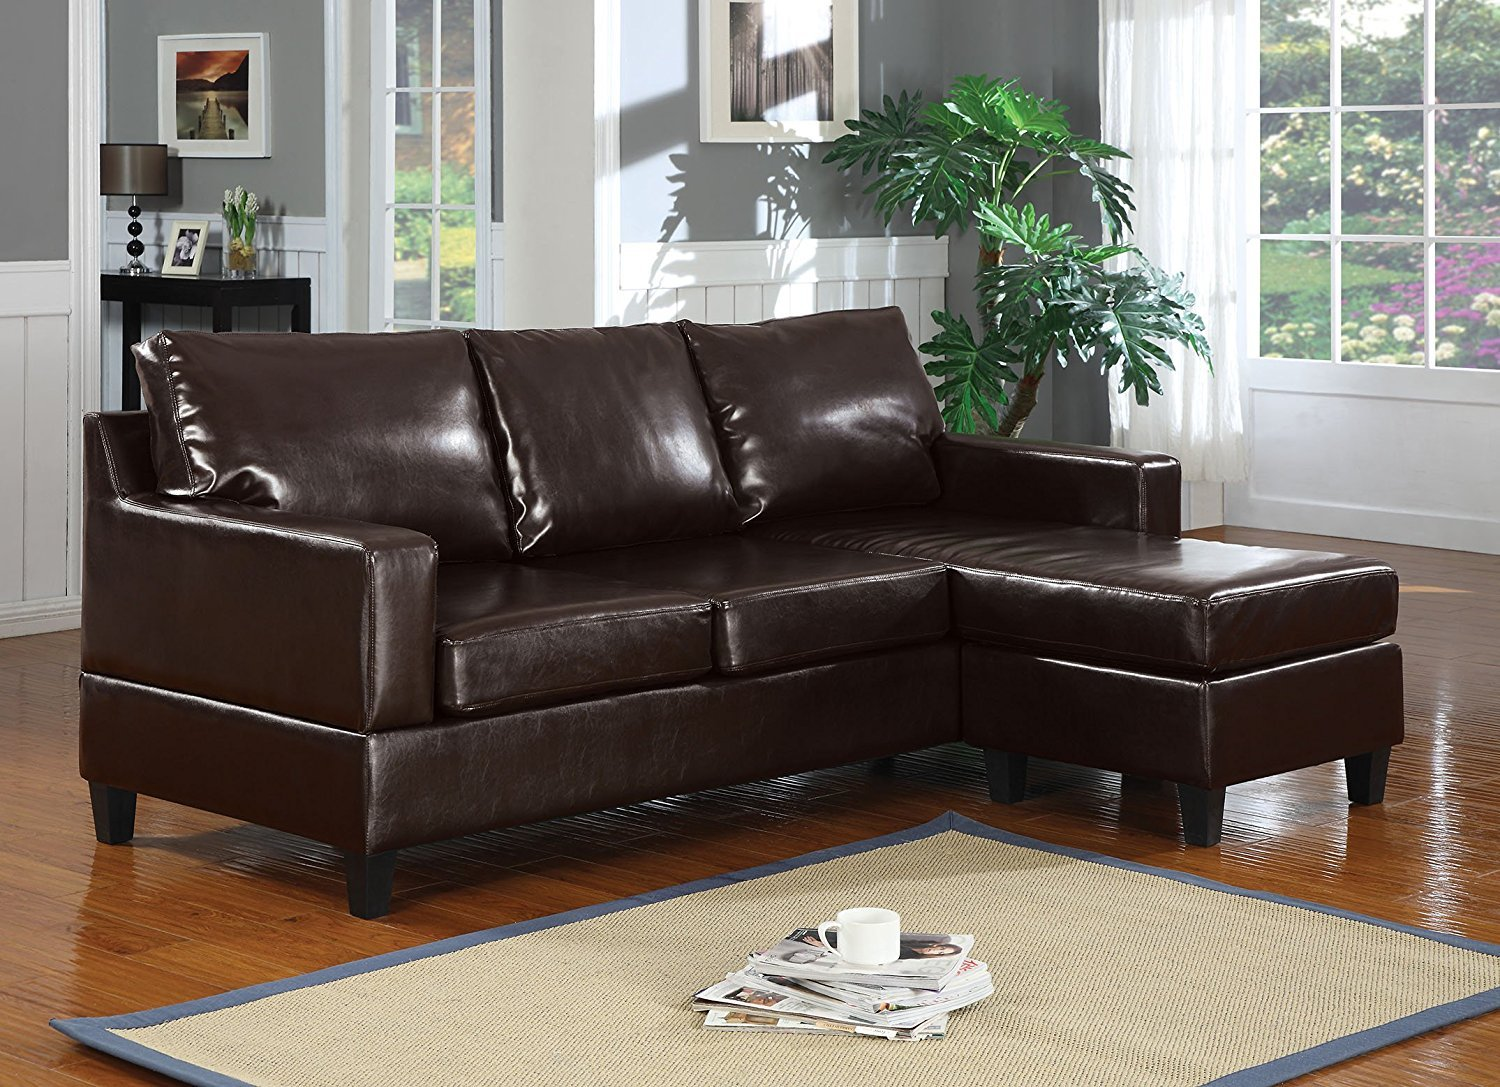 Amazon Com Major Q Bonded Leather Sectional Chaise Reversible Sofa